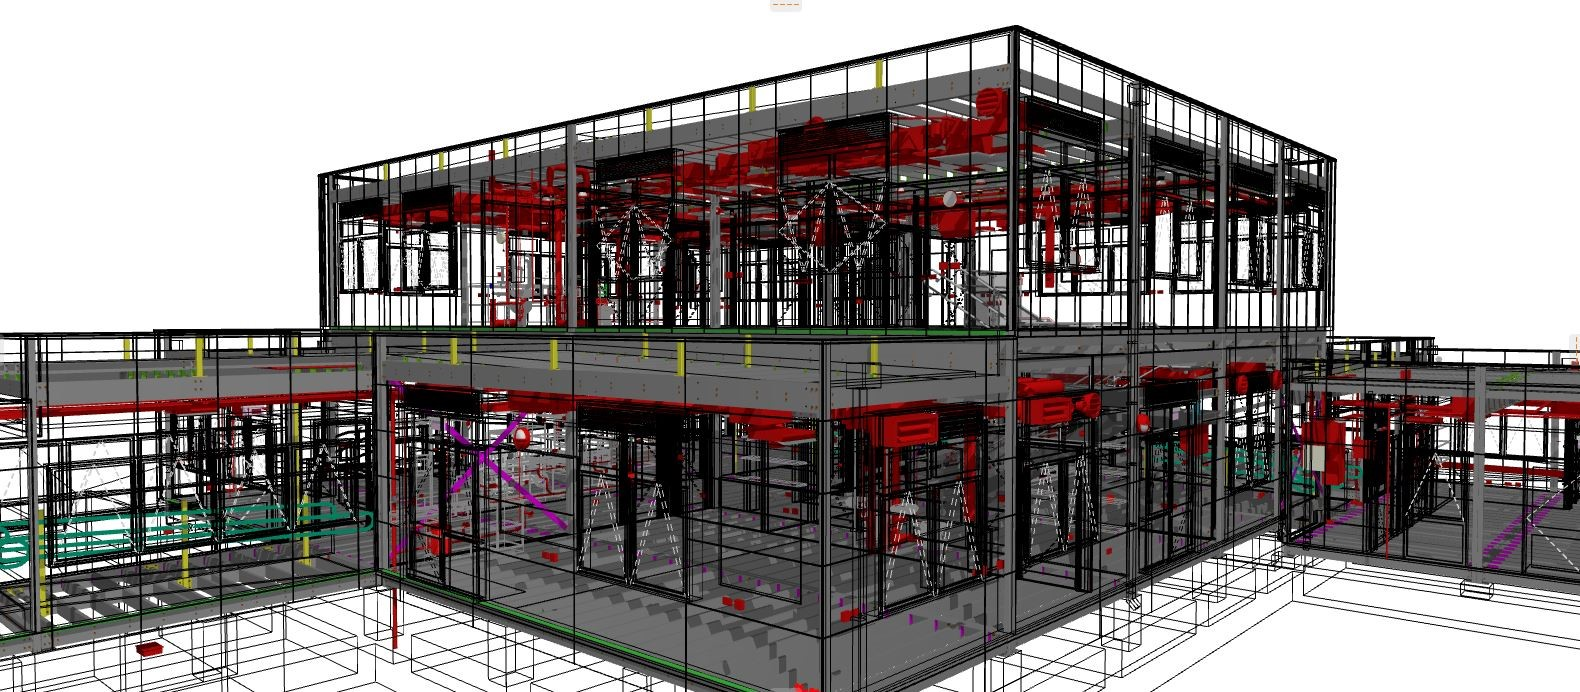 McAvoy wins industry award for BIM